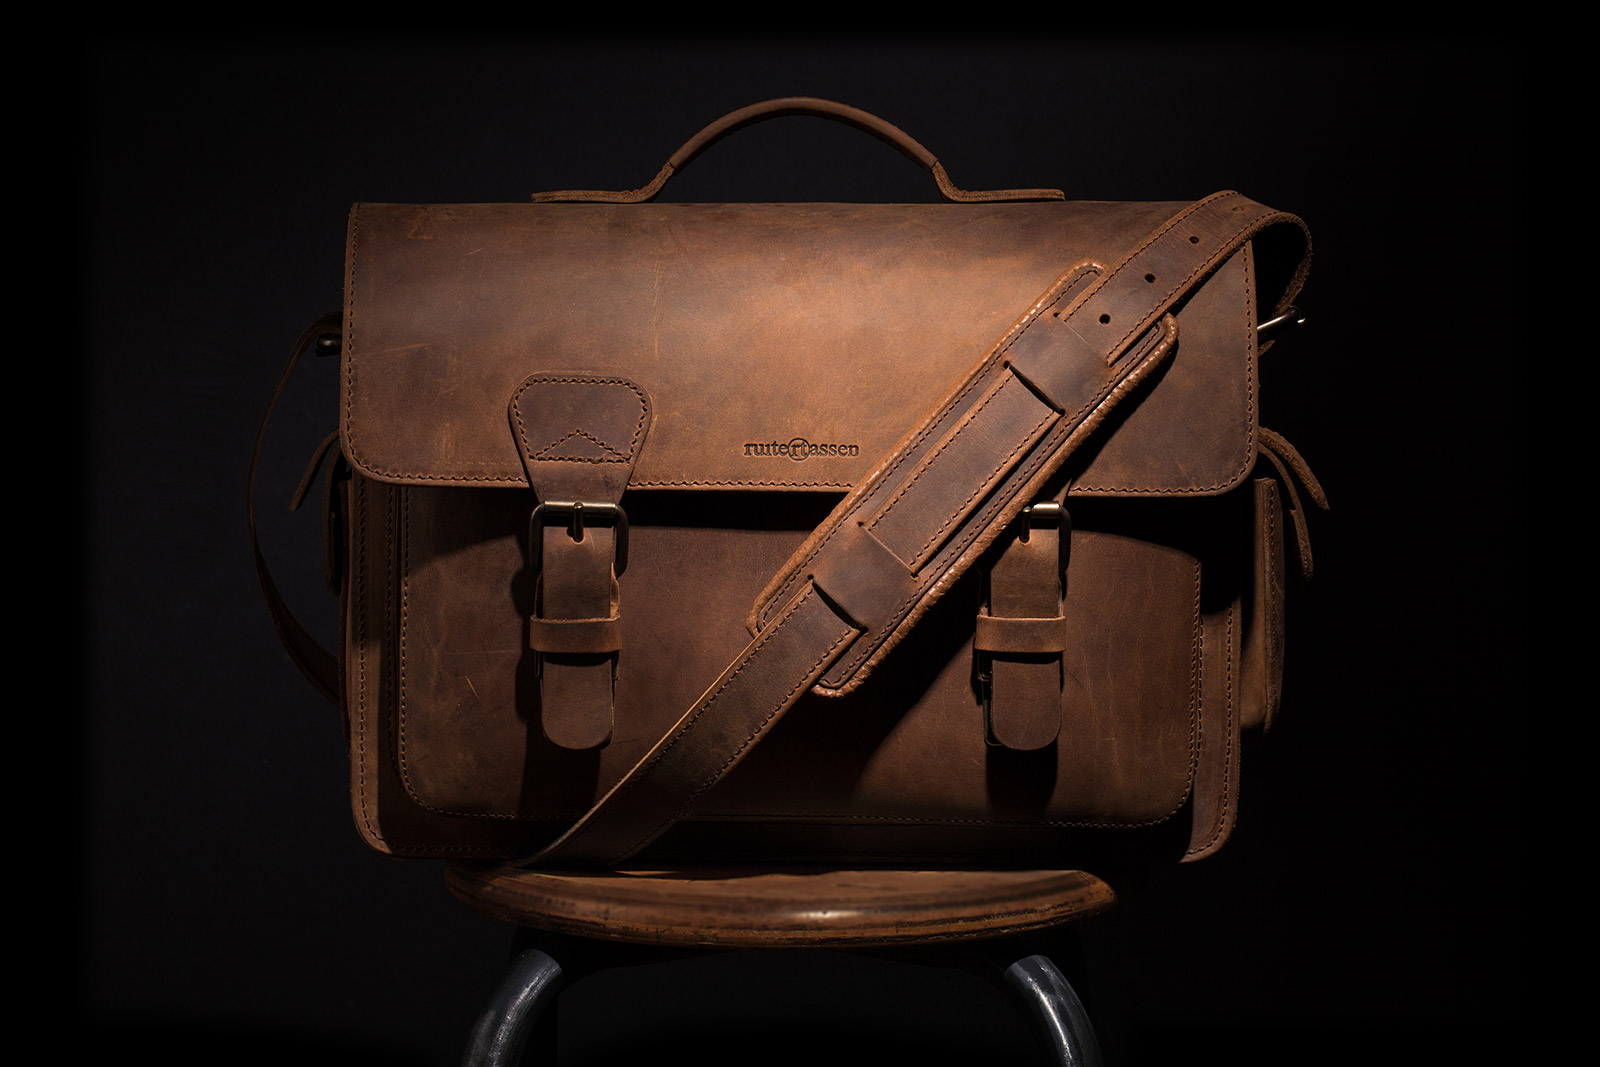 Beautiful Leather Camera Bag by Ruitertassen.